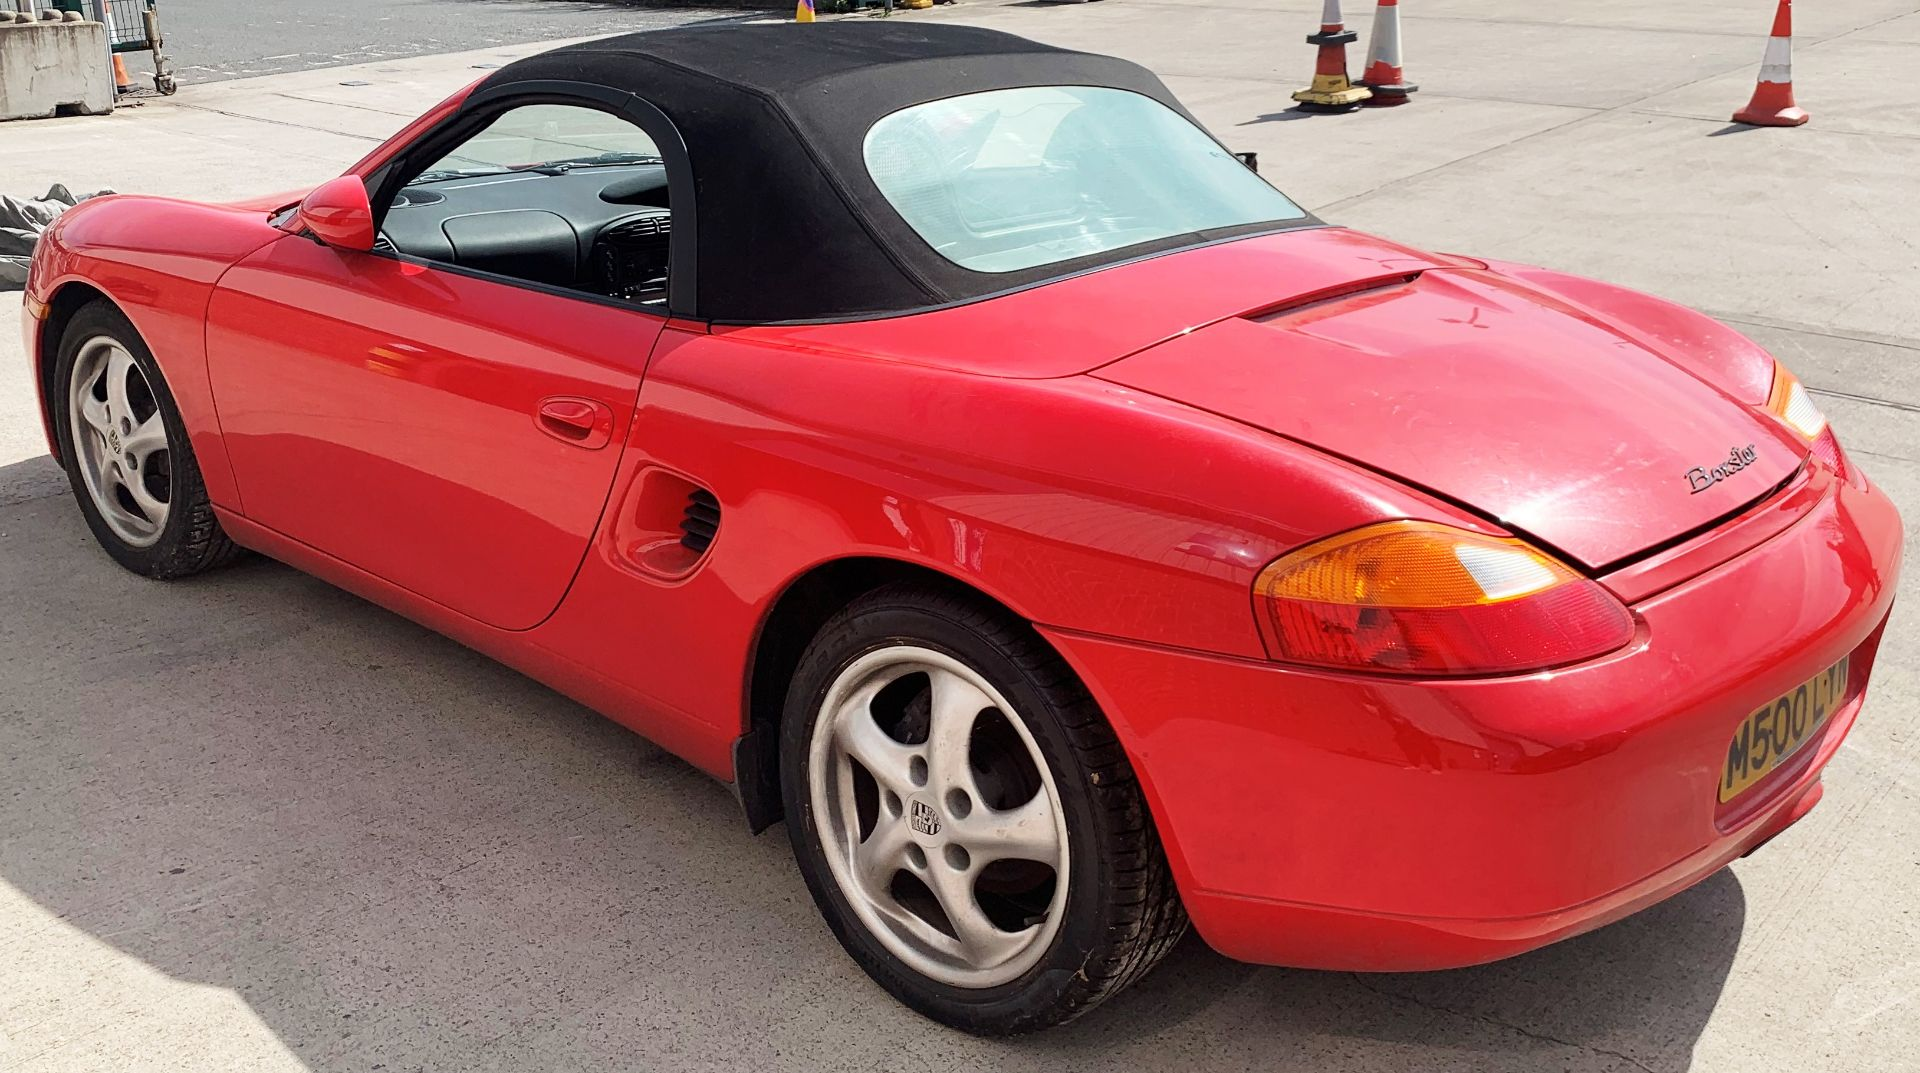 From a deceased estate: PORSCHE BOXSTER 2.5 CONVERTIBLE - Image 6 of 25